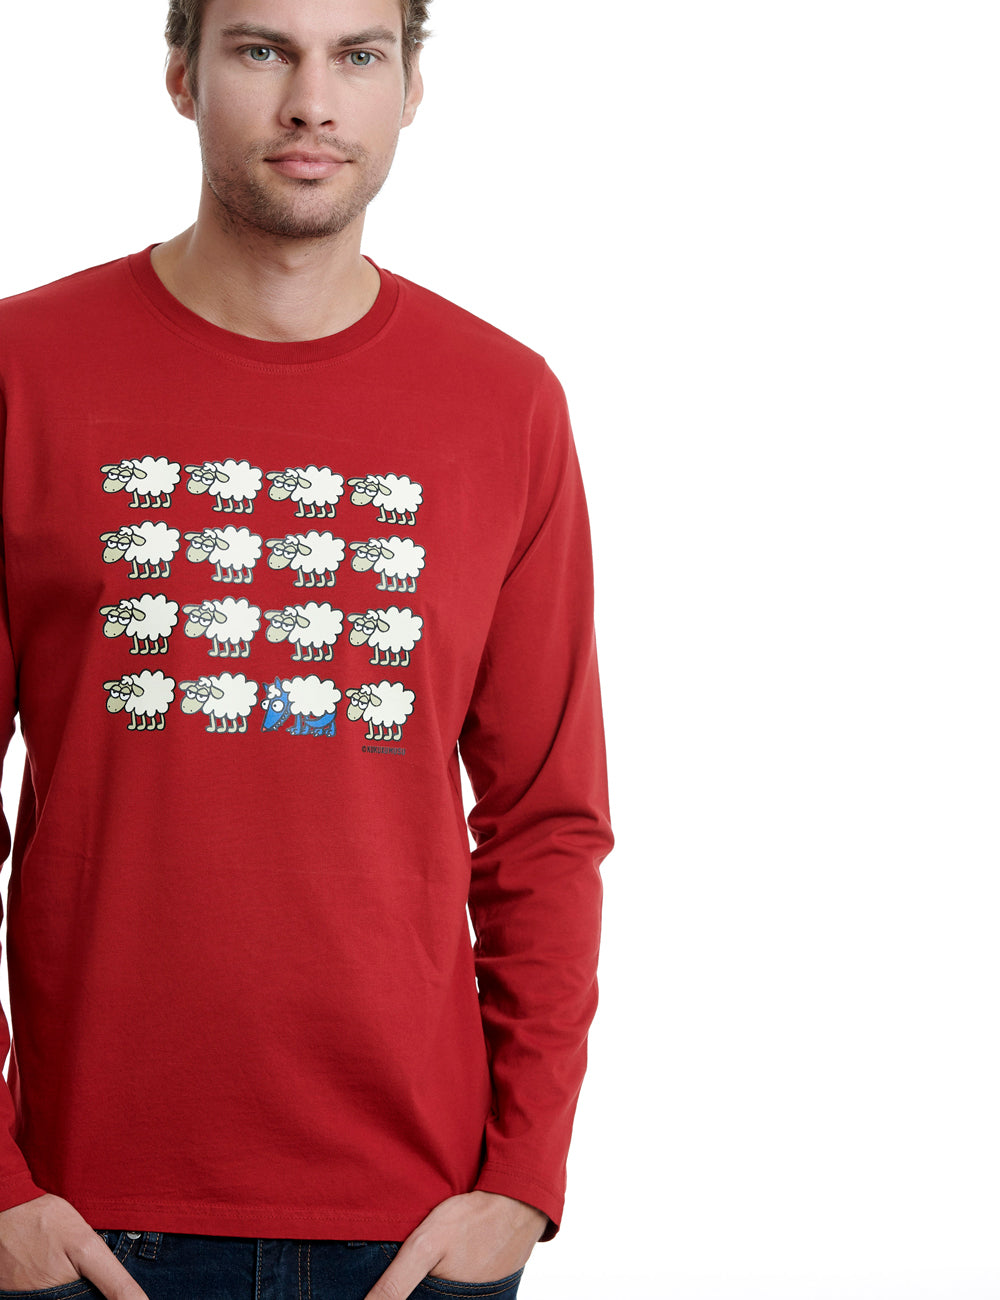 Escondido long sleeve kukuxumusu red